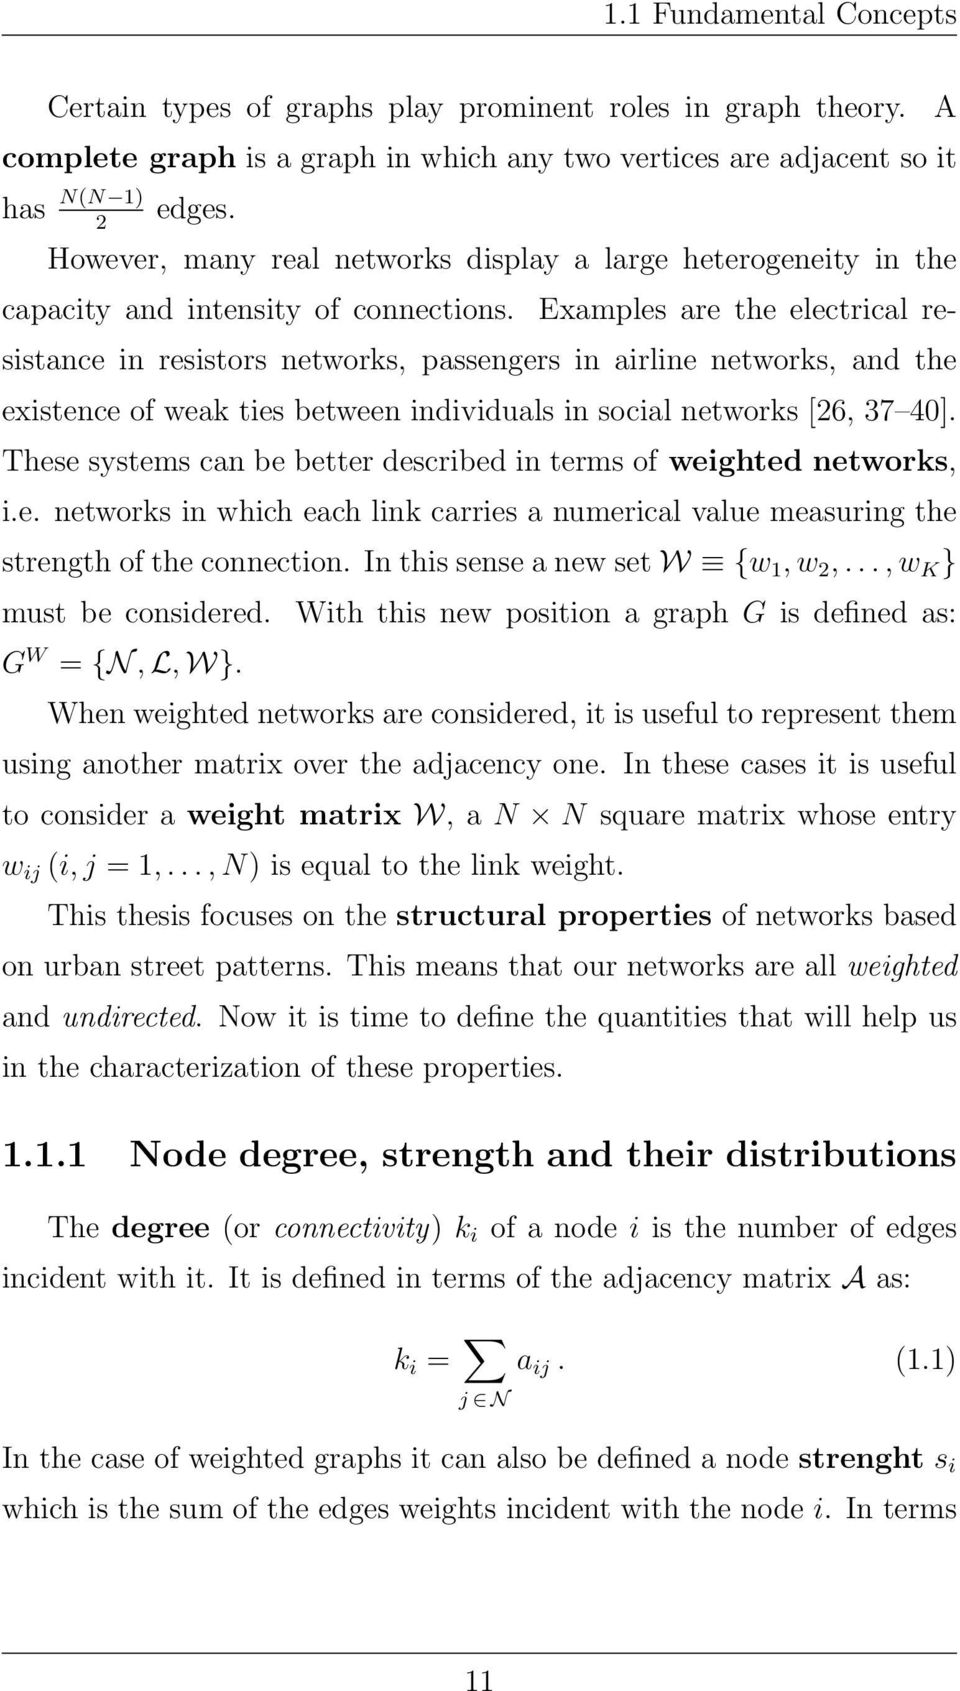 Examples are the electrical resistance in resistors networks, passengers in airline networks, and the existence of weak ties between individuals in social networks [26, 37 40].